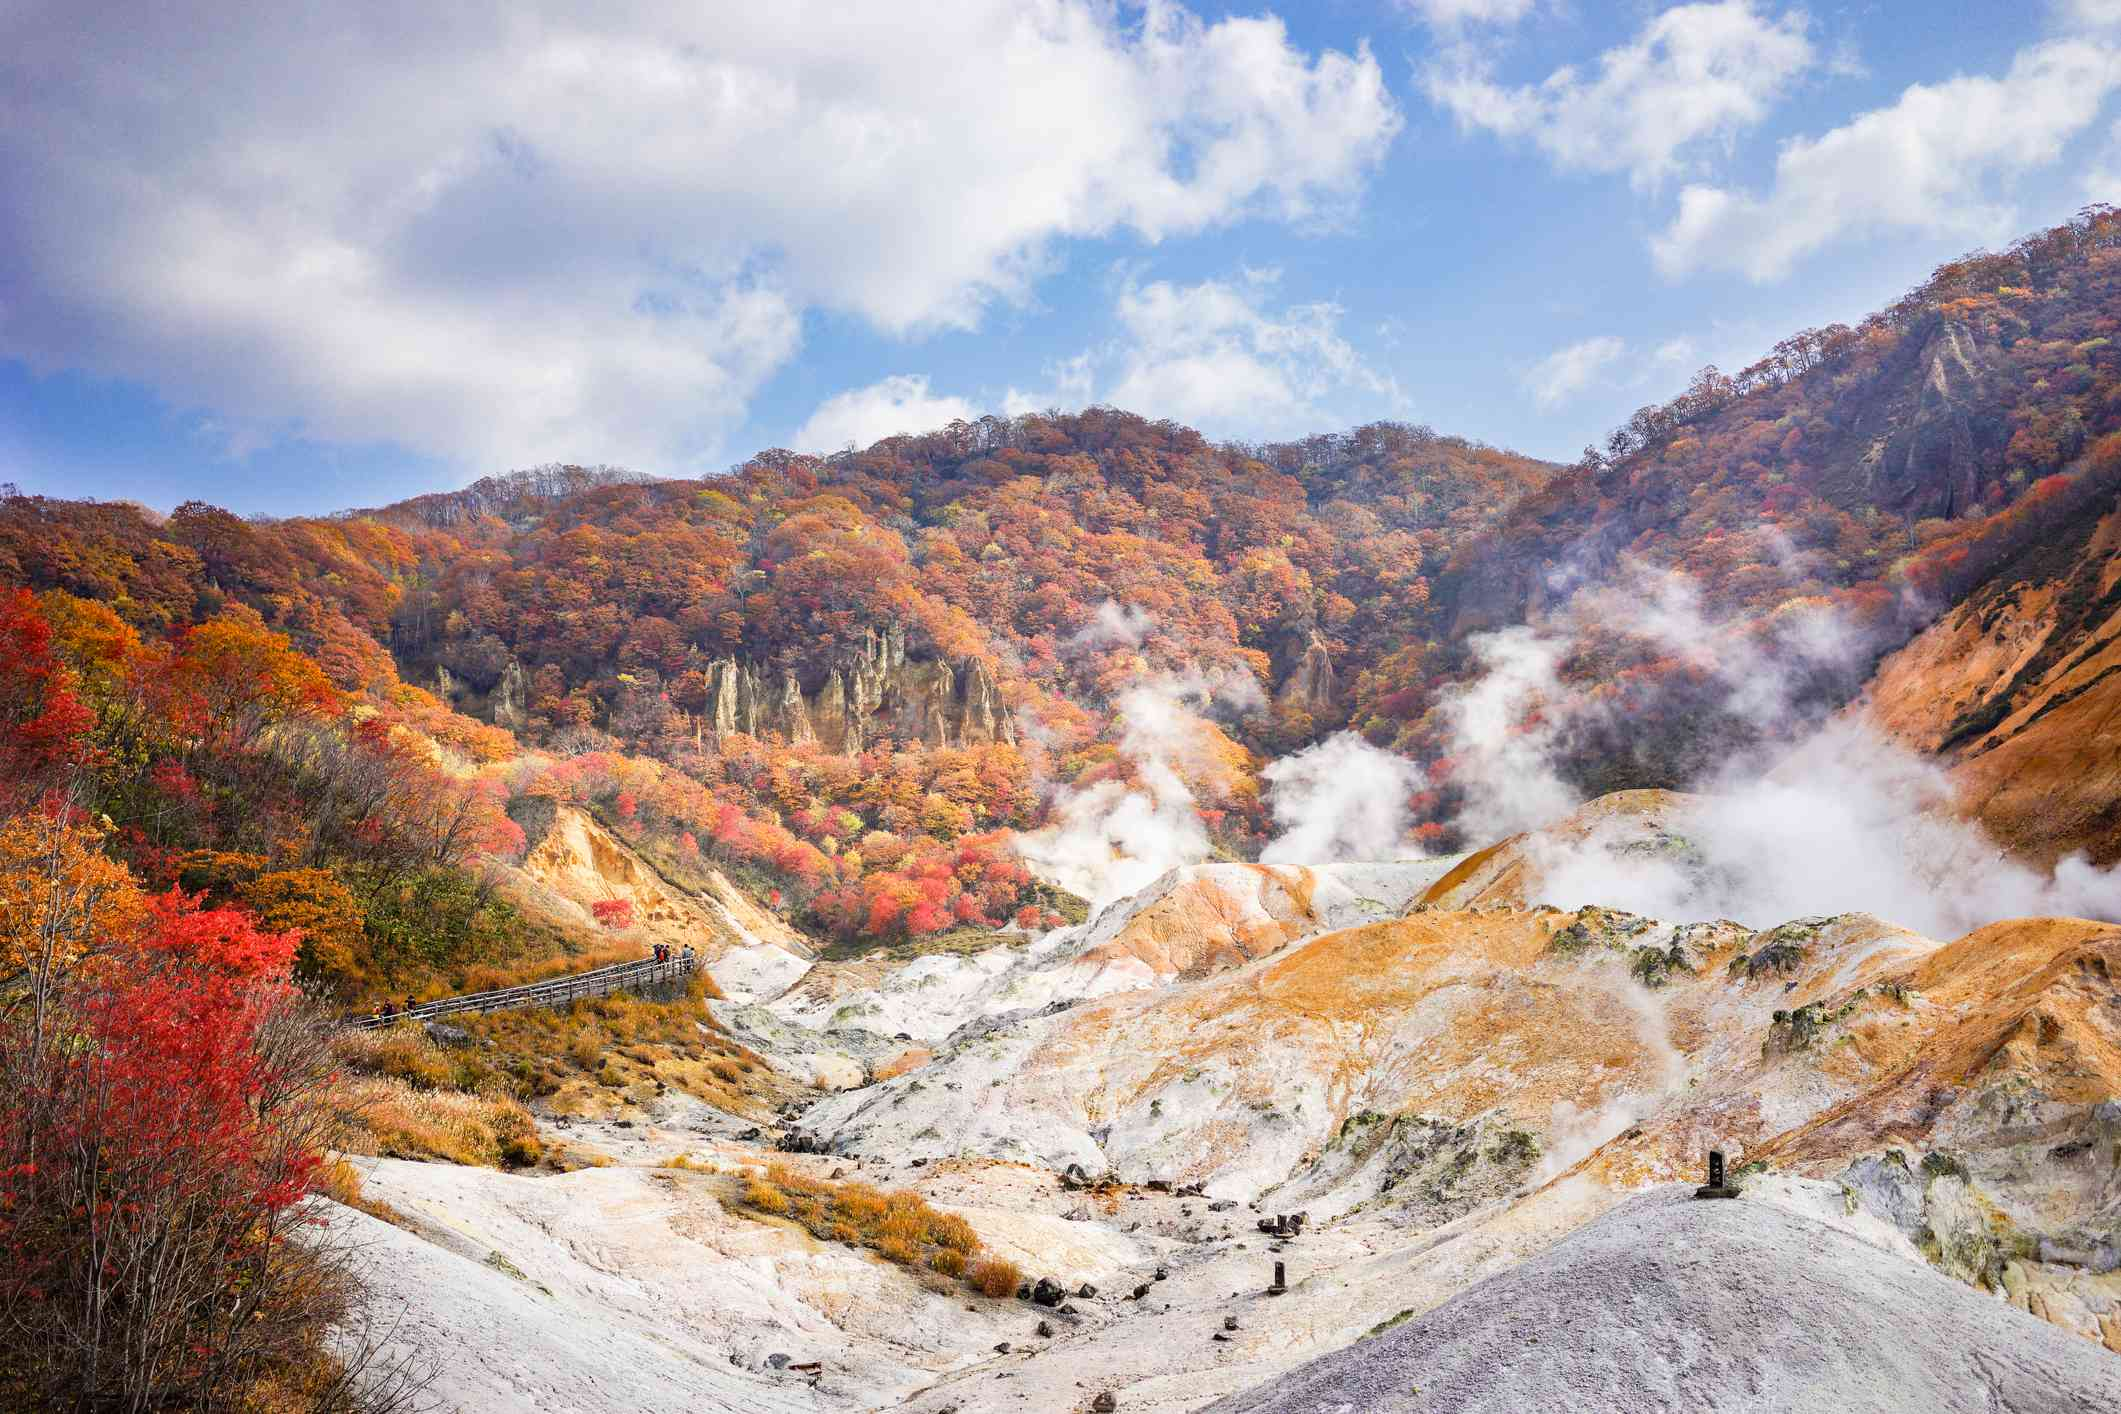 Beautiful sunny day at Noboribetsu Jigokudani or Hell Valley in Hokkaido, Japan. Autumn season, red leaves, blue sky and sulfur gas steaming out from ground.